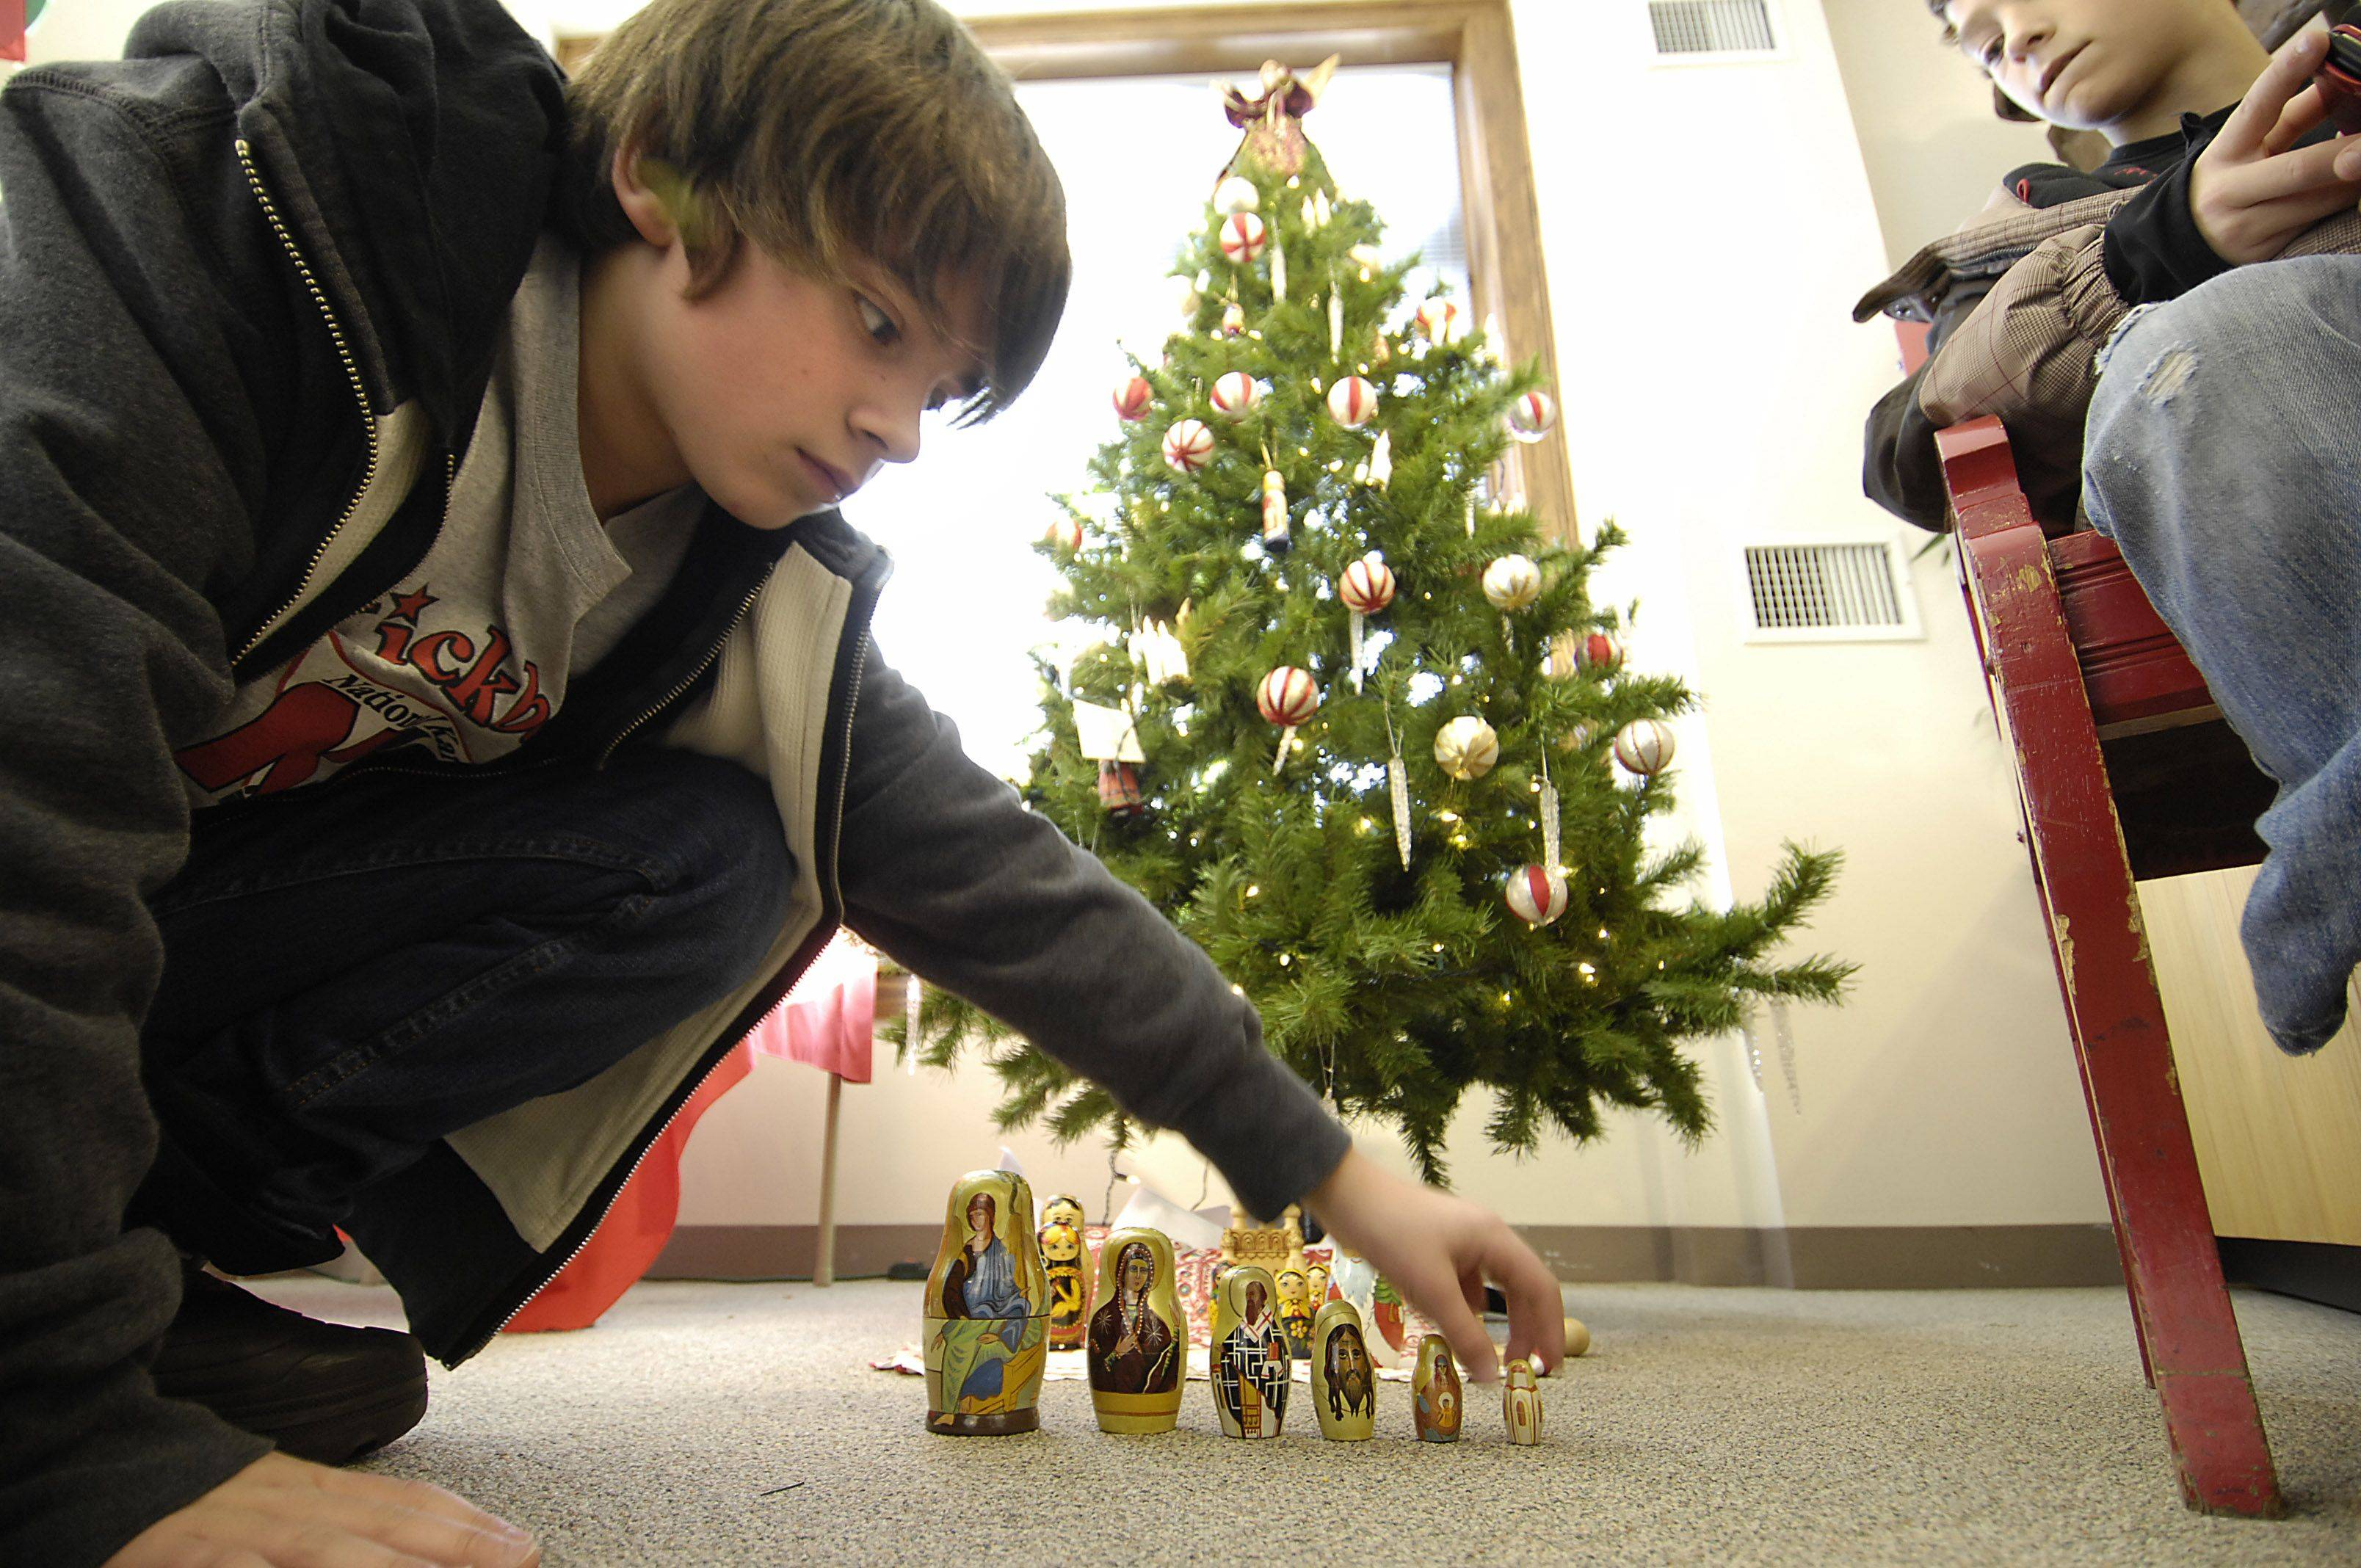 Henry Myers, 14, inspects Russian Christmas babushka nesting doll decorations Sunday at the Elgin Public Museum's Touching on Traditions exhibit. The exhibit features more than 50 displays of holiday significance from countries around the globe. Henry was with his dad Art and brother Andy. He was at the museum to gather information for a school project. The holiday exhibit will be shown every day starting Dec. 18 until the end of the month.